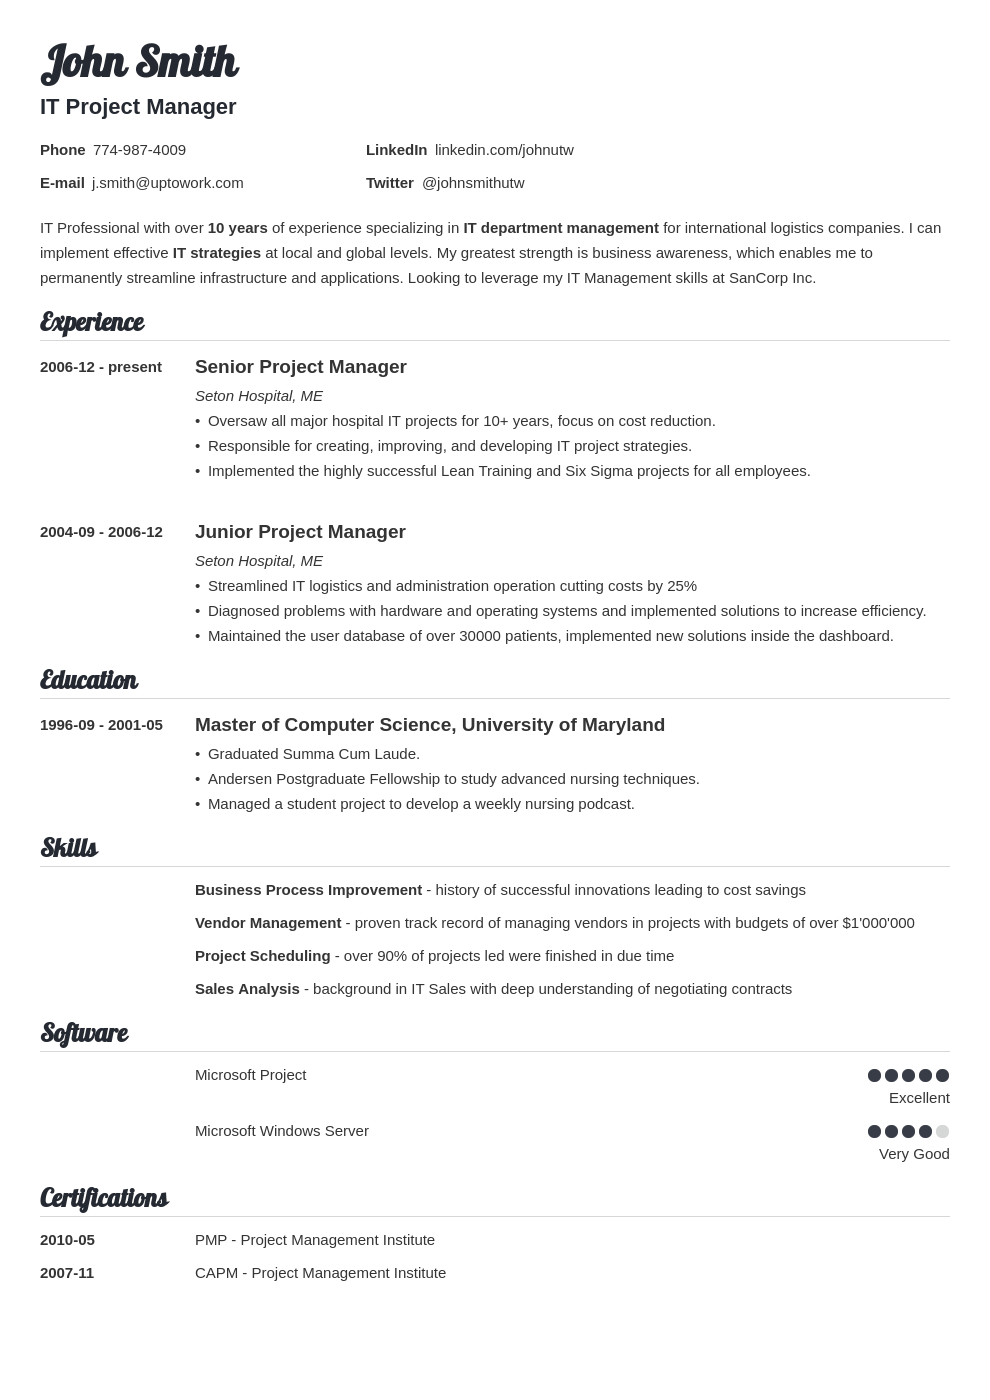 Examples Of Resumes For Jobs | 20 Resume Templates Download Create Your Resume In 5 Minutes